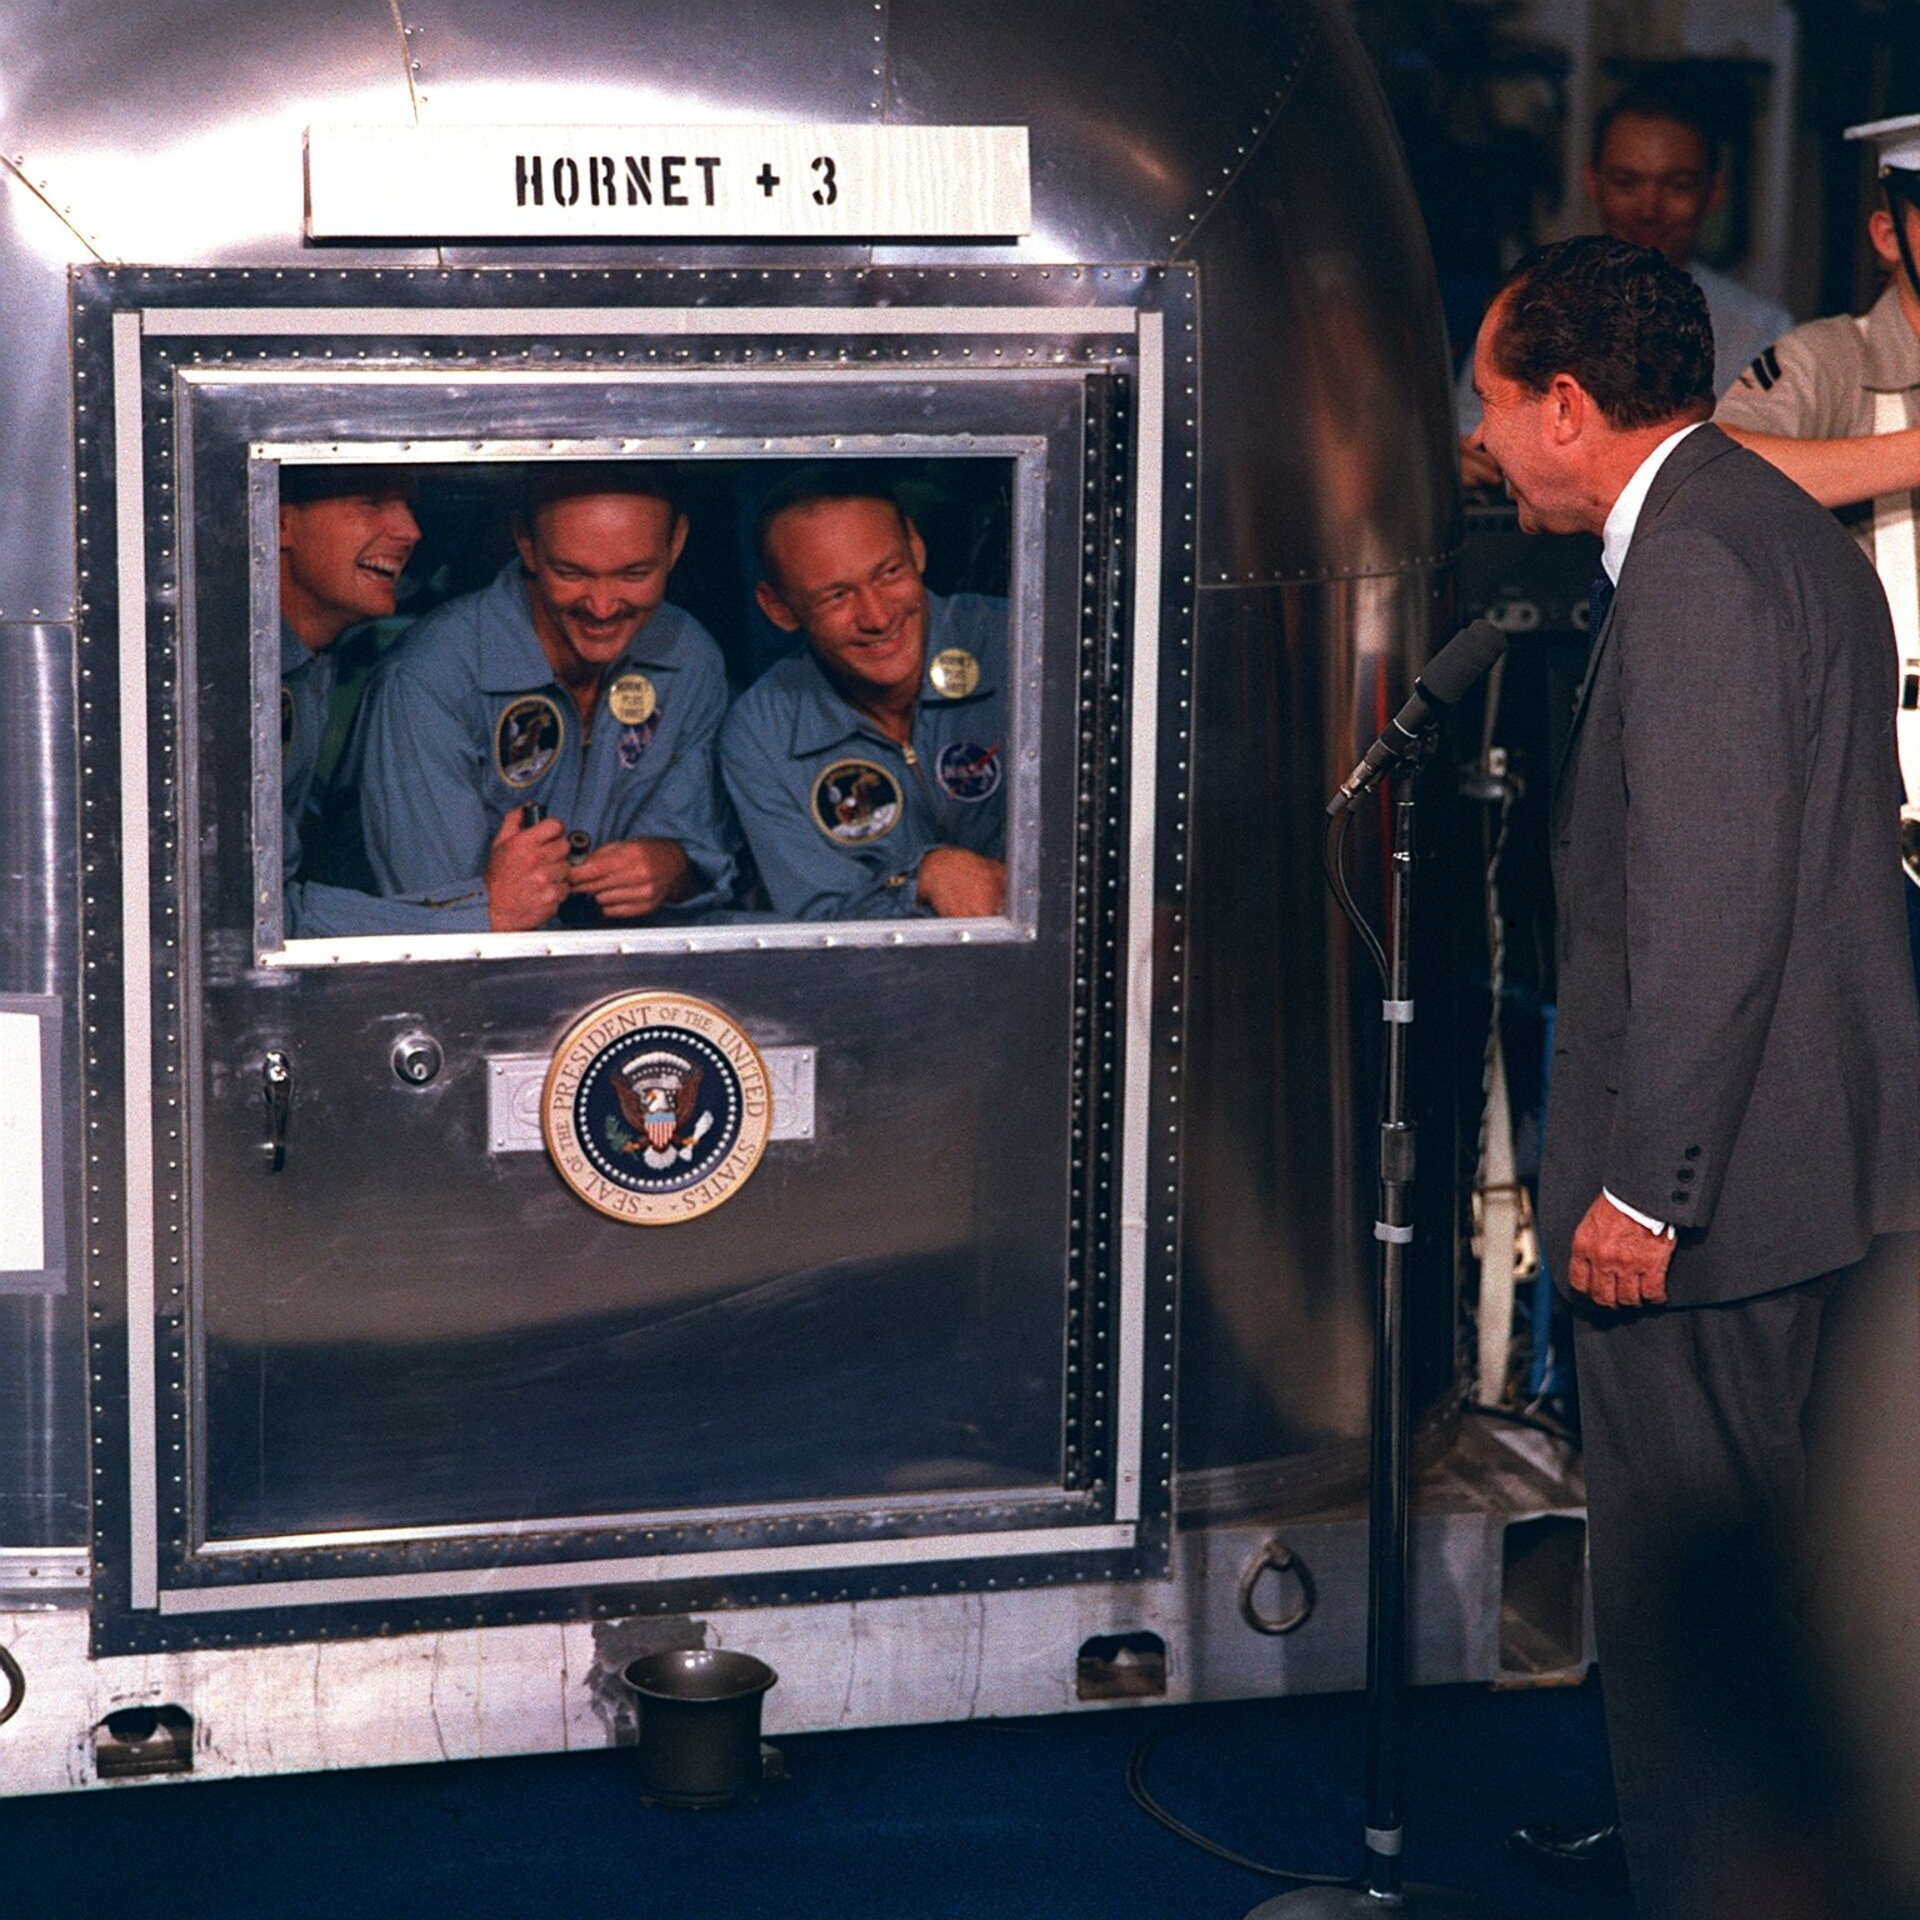 President Nixon greets the Apollo 11 crew after splashdown